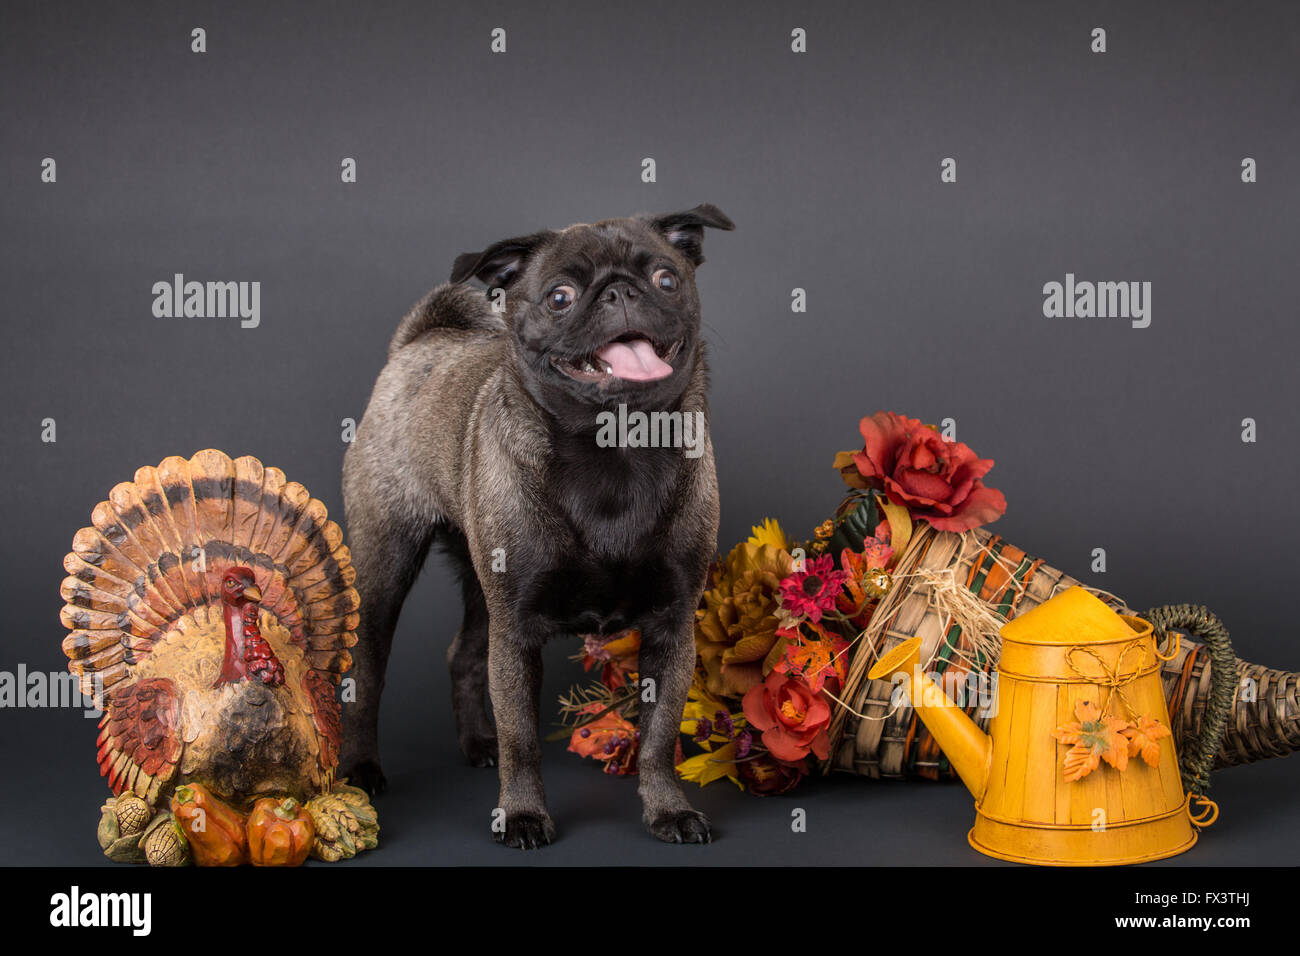 Olive, the Pug, surrounded by Thanksgiving decorations in Issaquah, Washington, USA Stock Photo